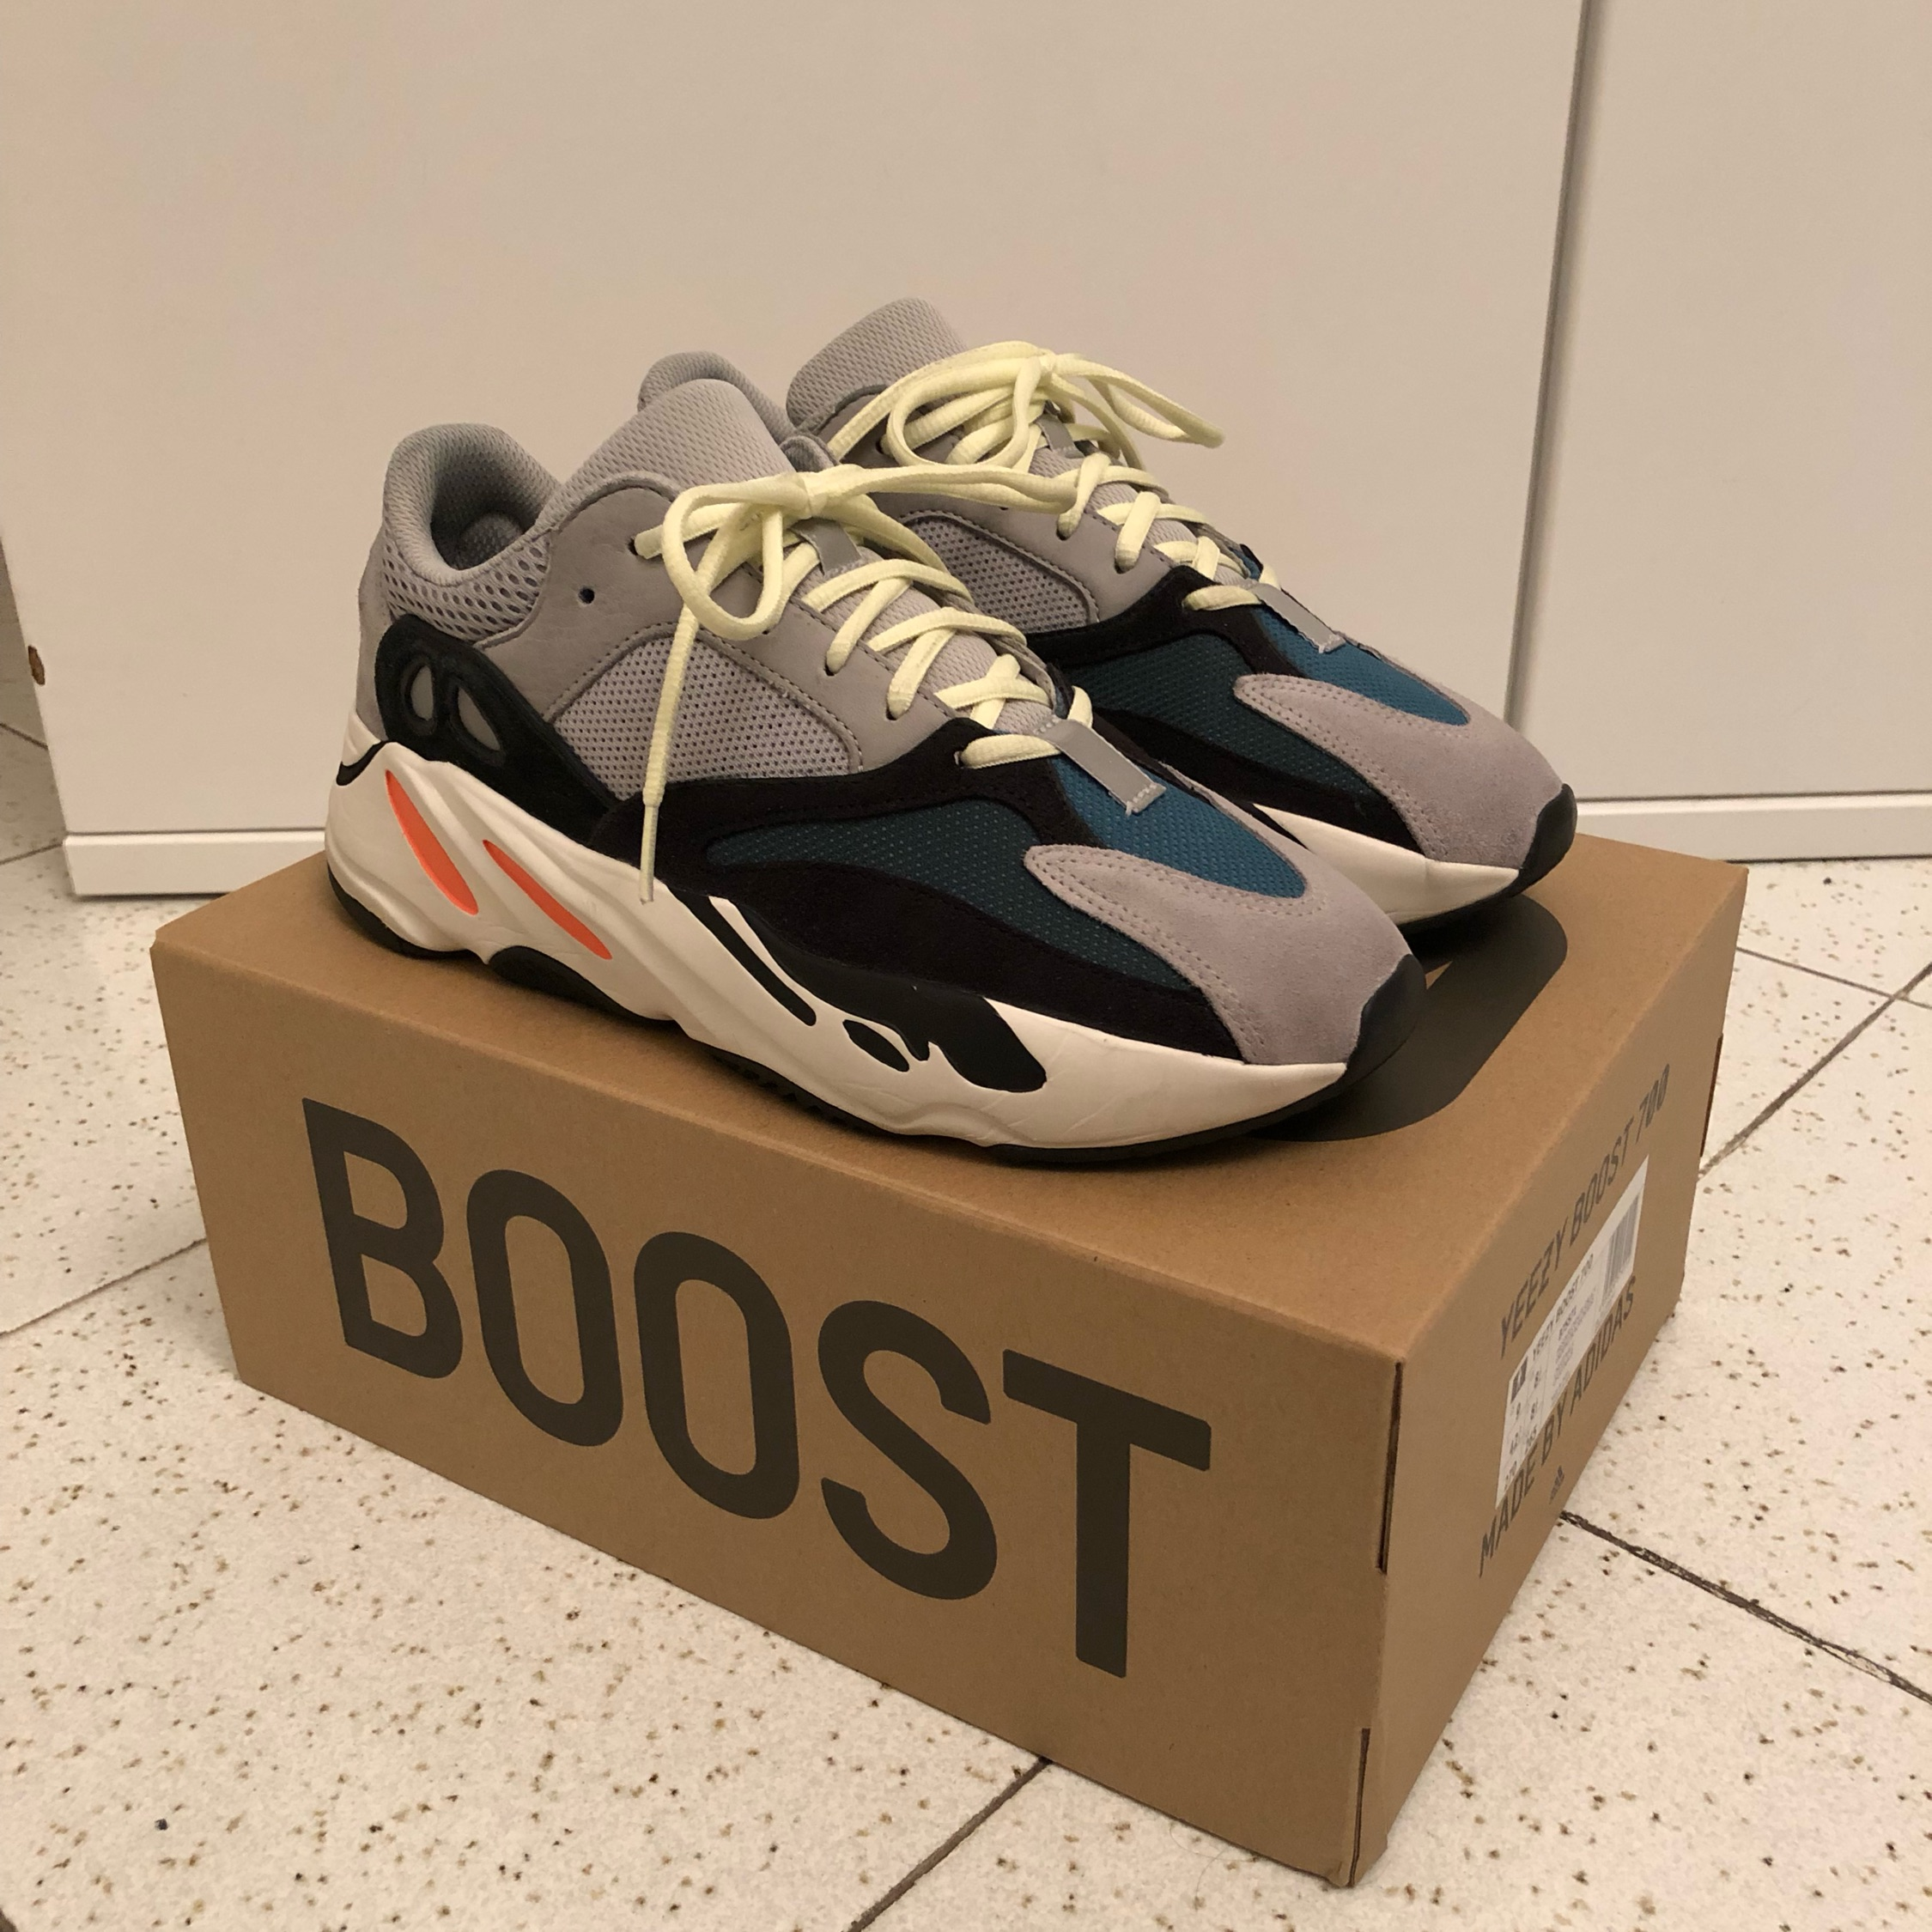 new style 7bdbd 3d5f4 Adidas Yeezy Boost 700 Wave Runners By Kanye West